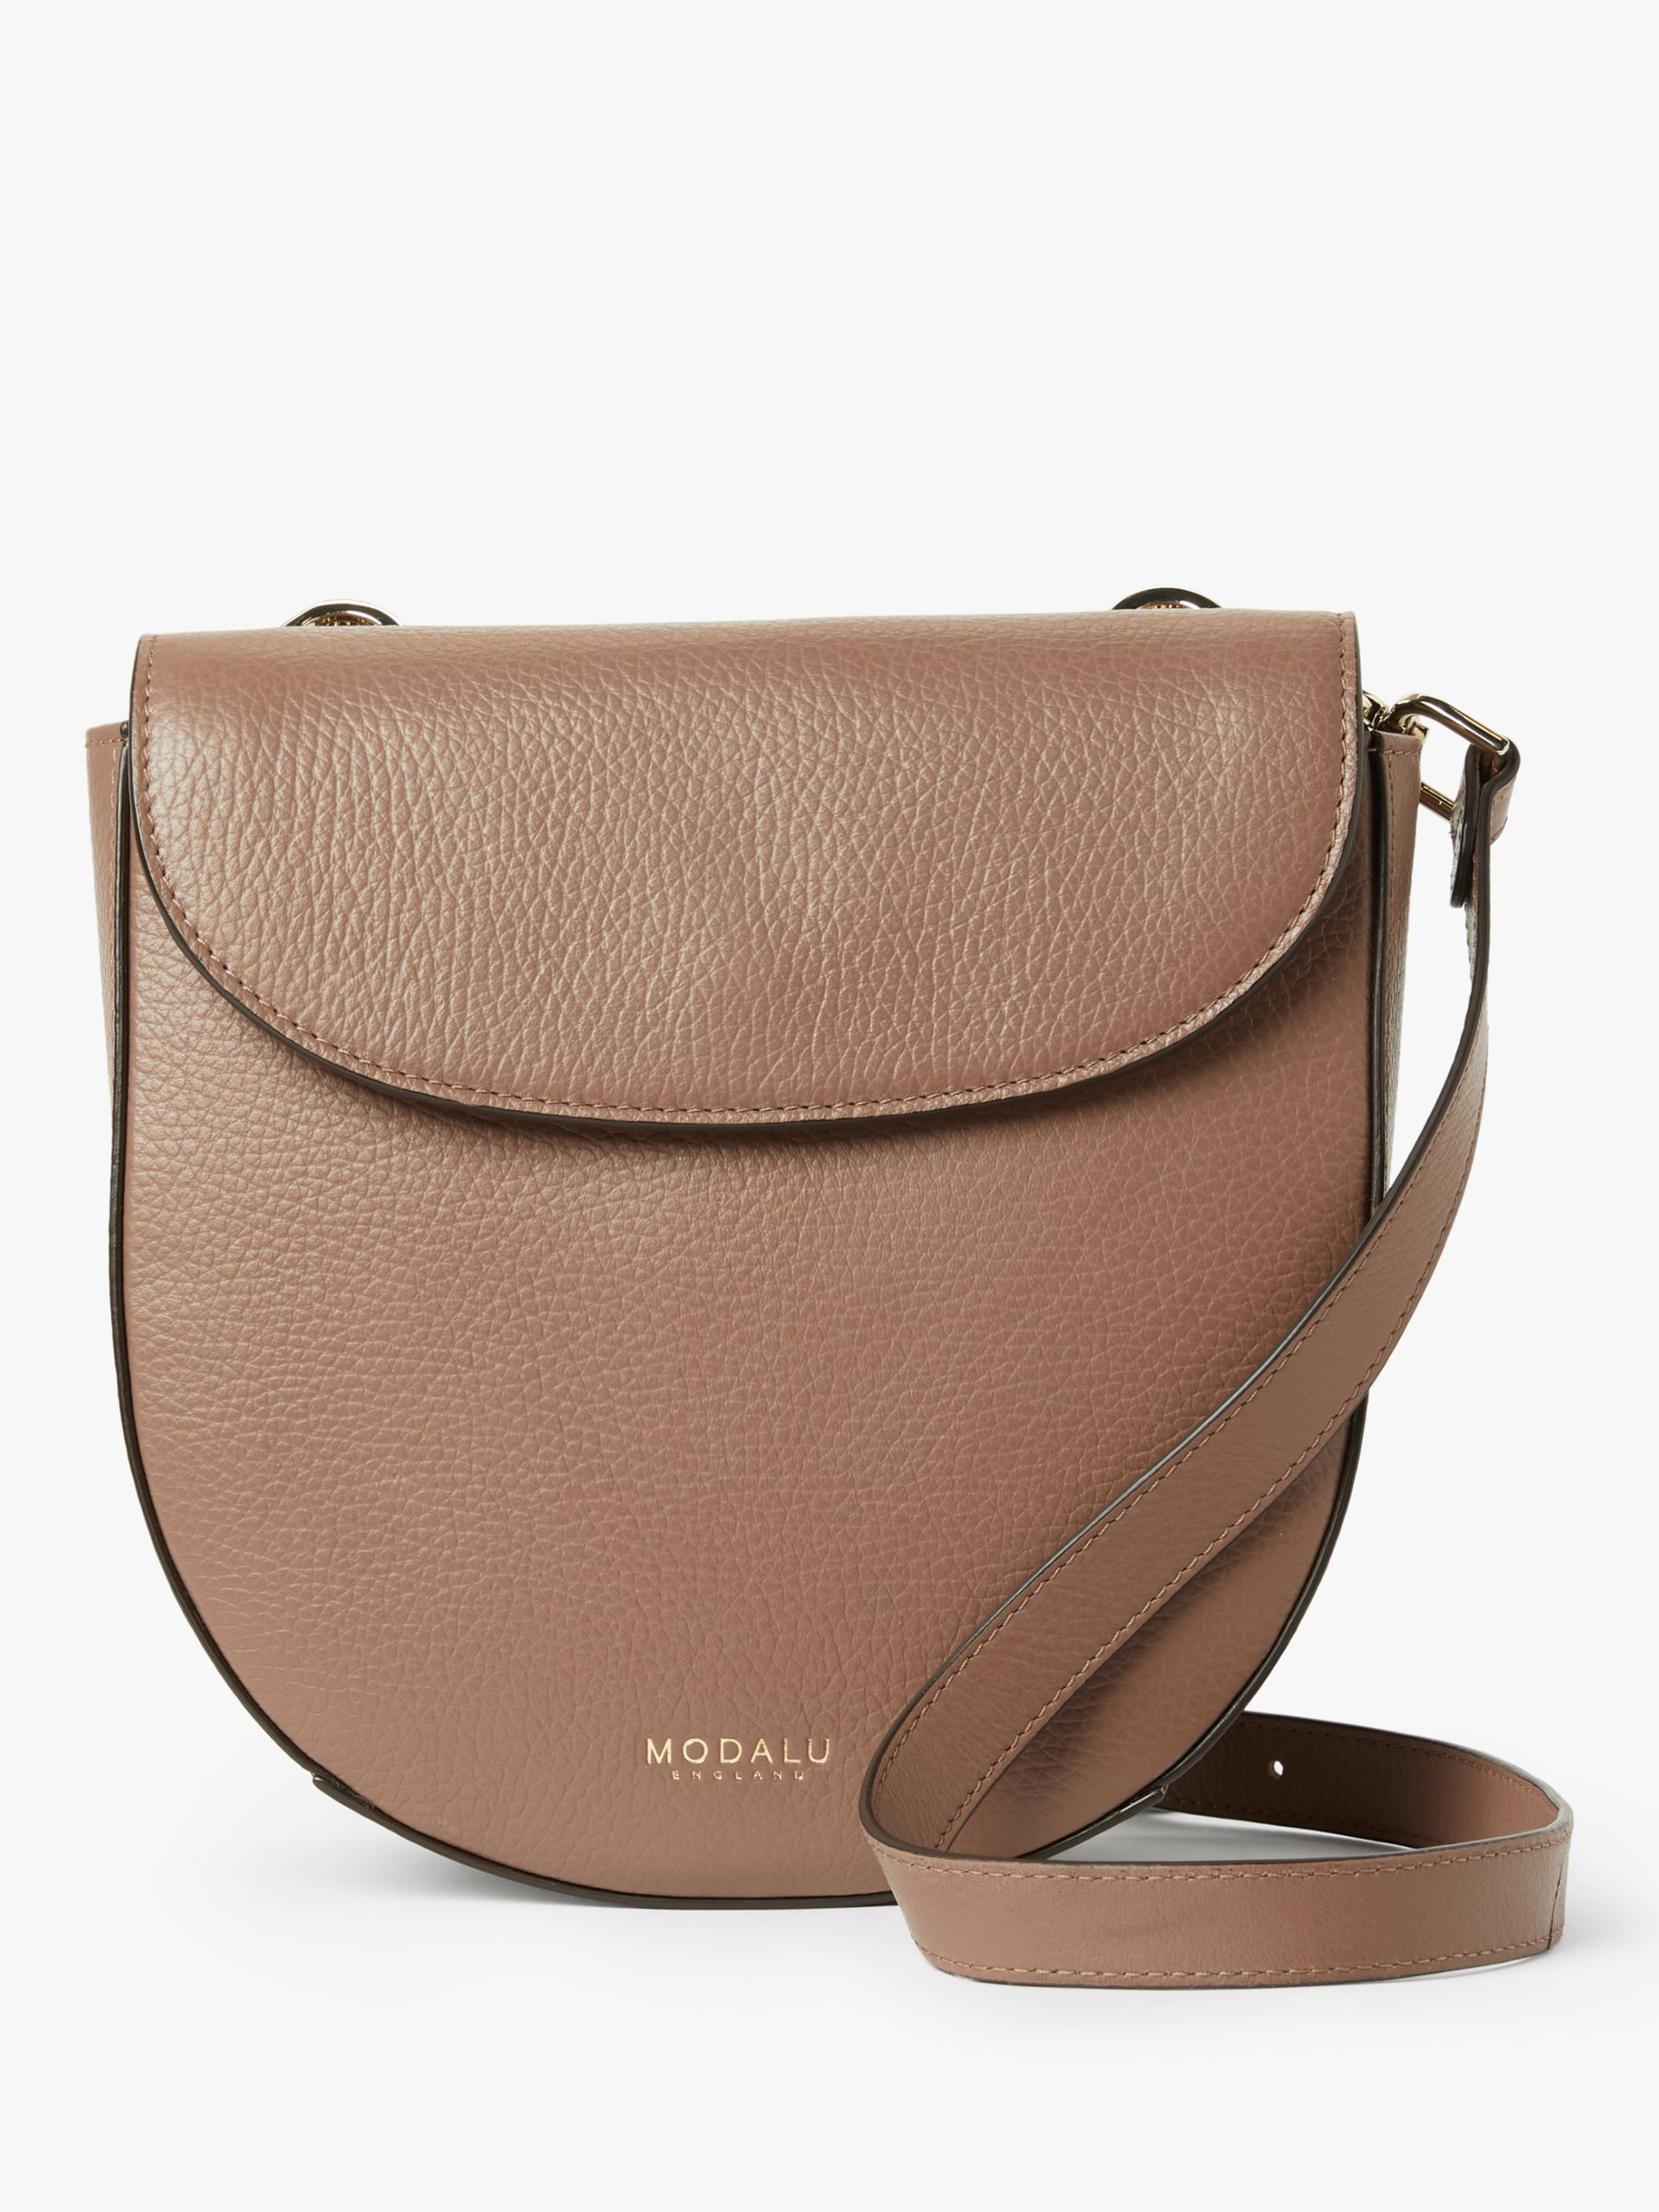 Modalu Modalu Sofia Leather Cross Body Bag